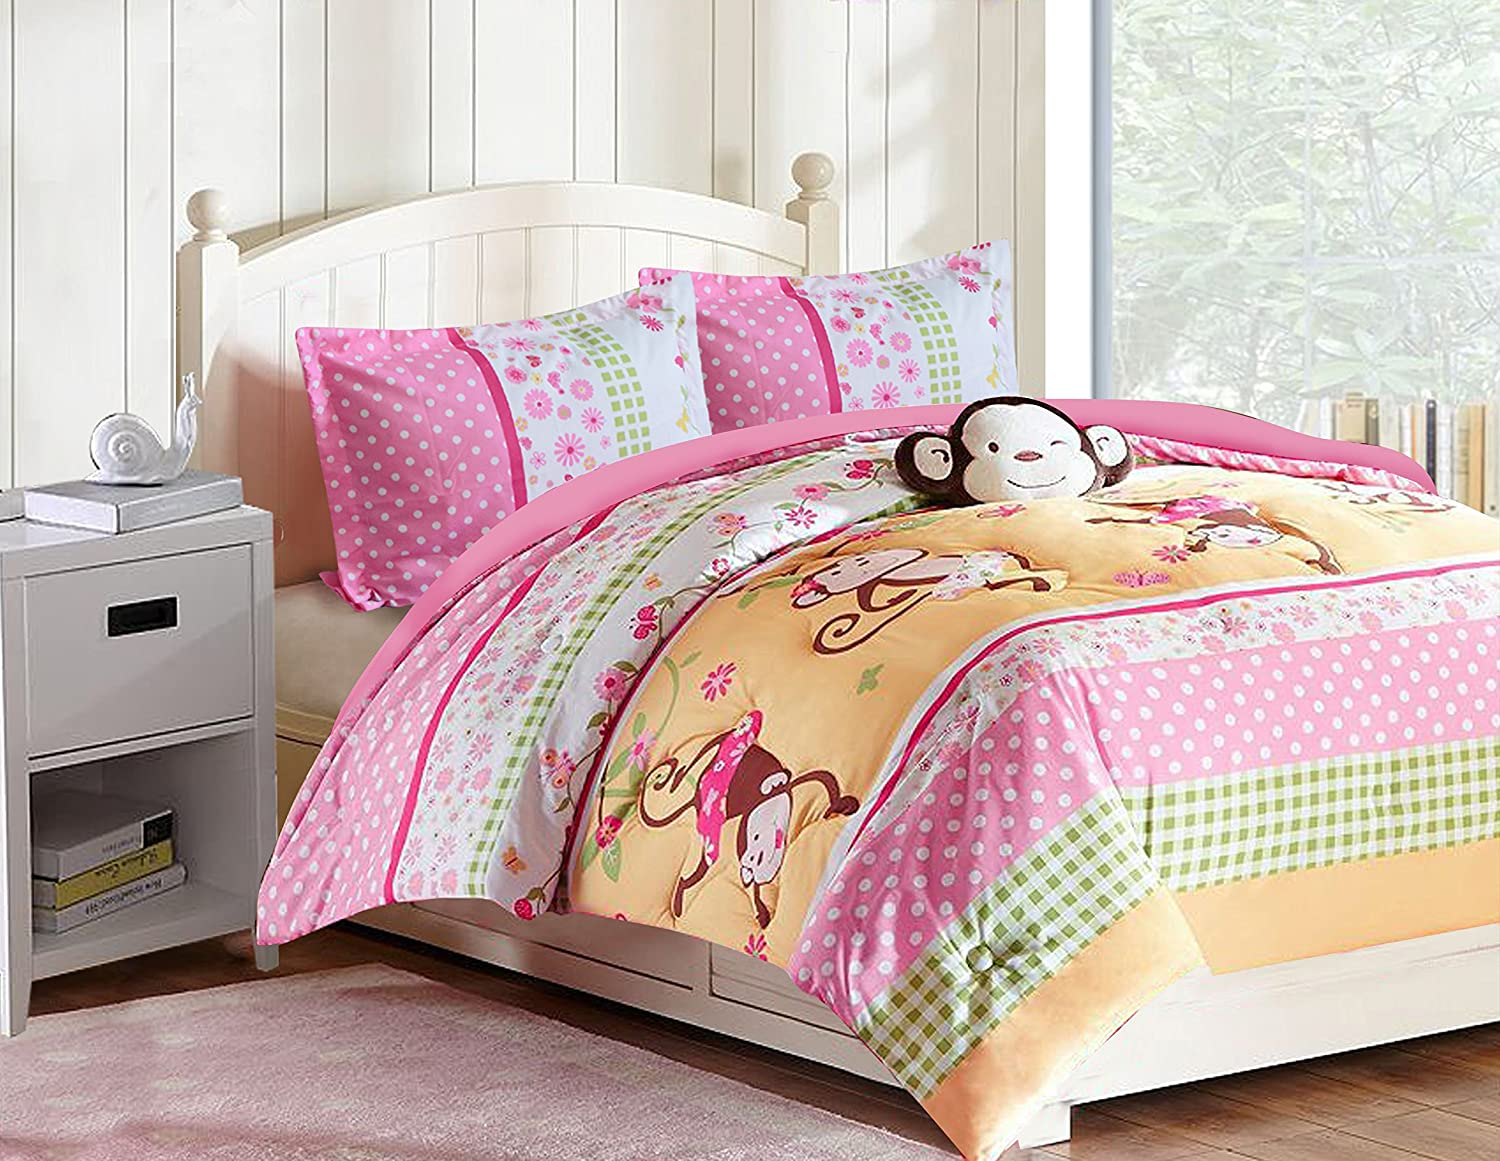 All American Collection 4 Piece Full Size Pink Monkey Comforter Set with Furry Friend (4PC FULL SIZE)